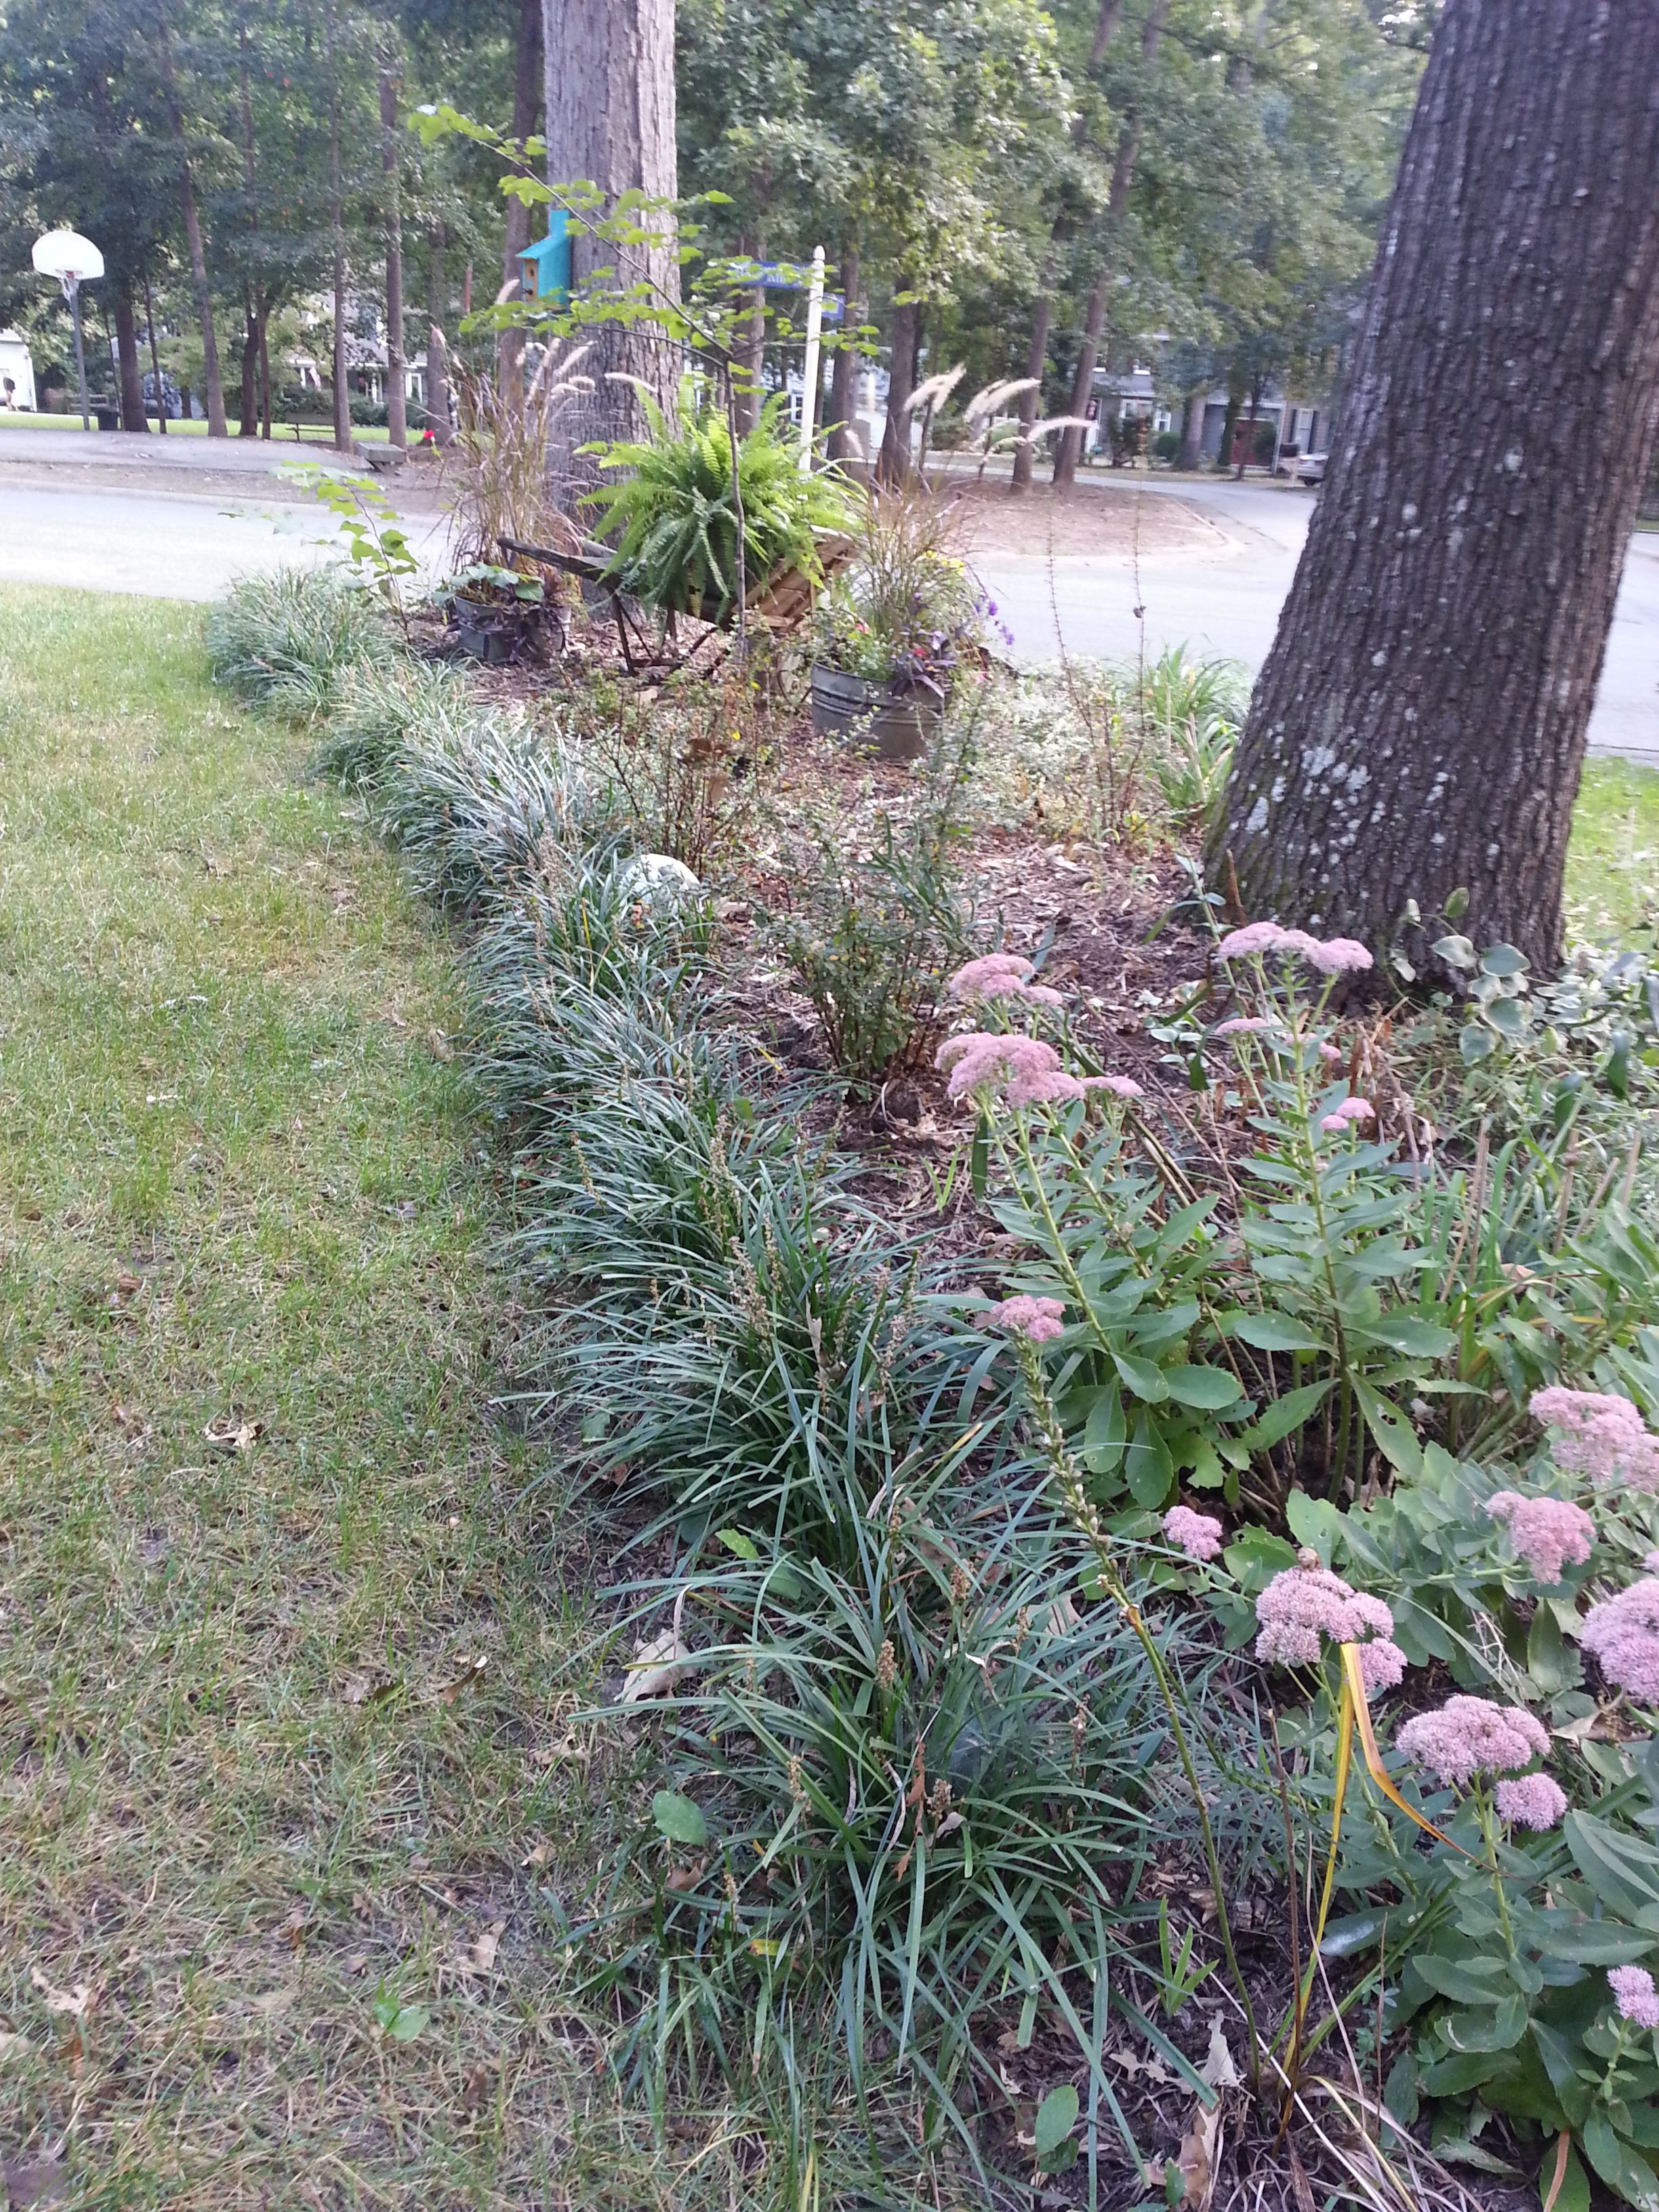 Durable Plants For The Garden: Liriope (Monkey Grass To Many) This Borders On Invasive